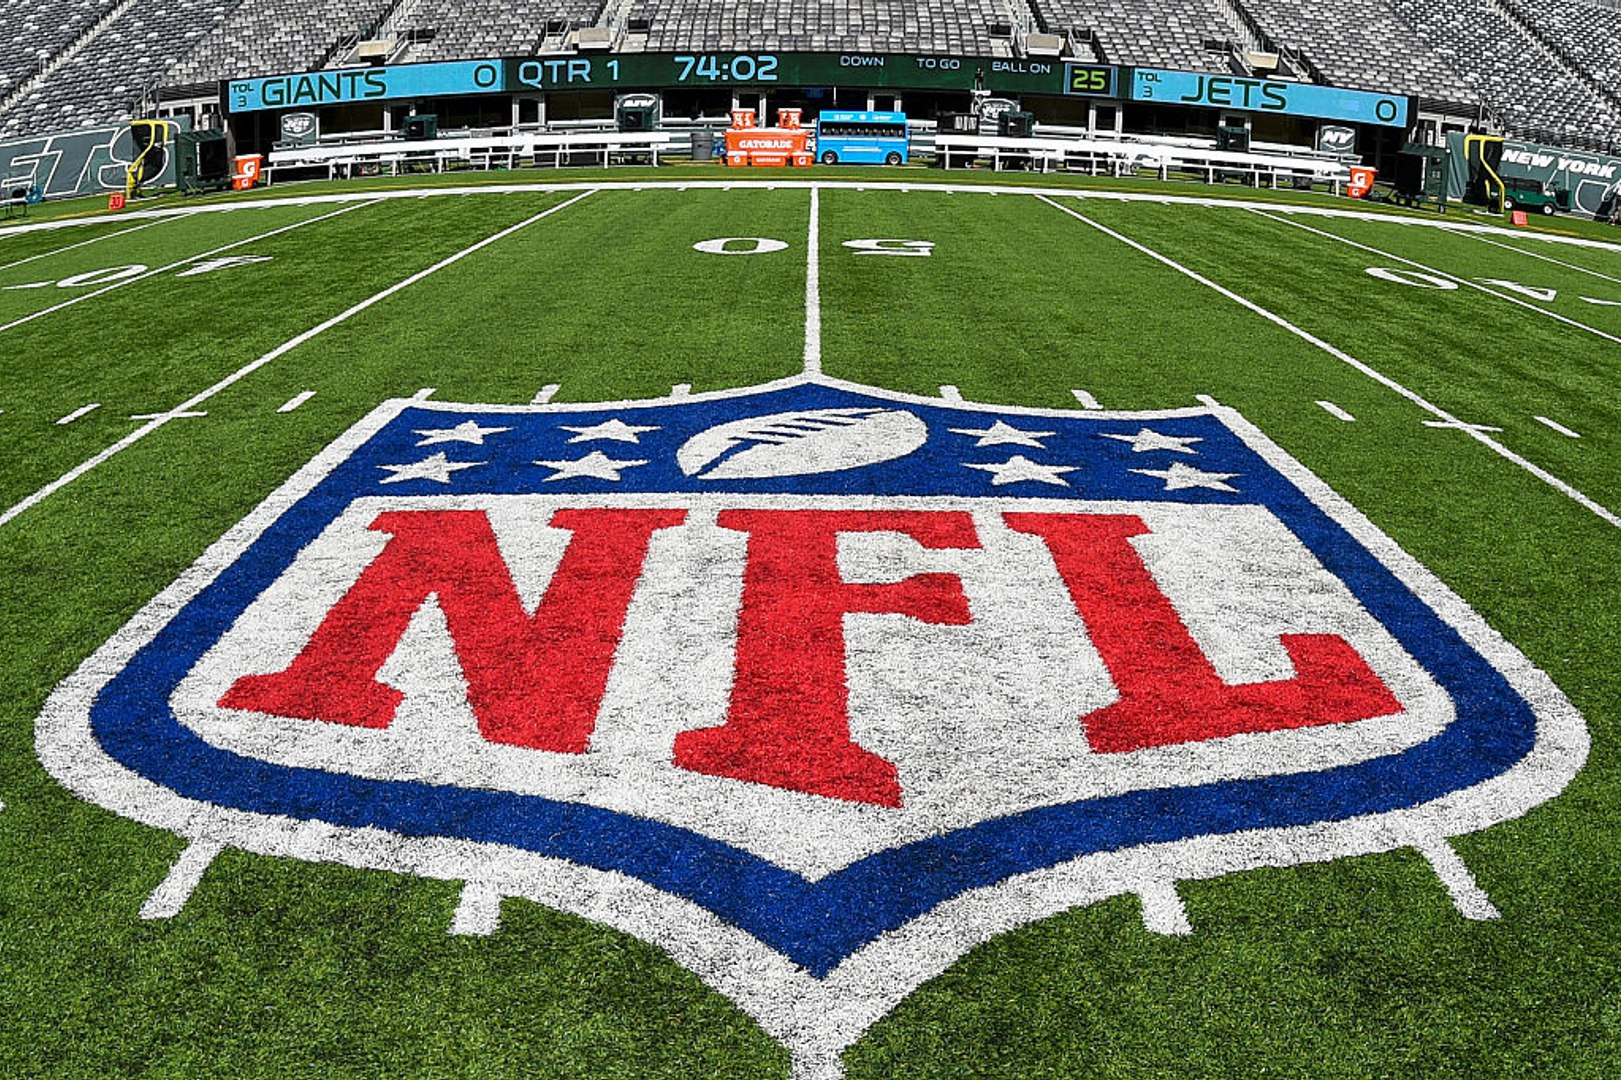 NFL faces lawsuit from ex-players for overprescribing painkillers